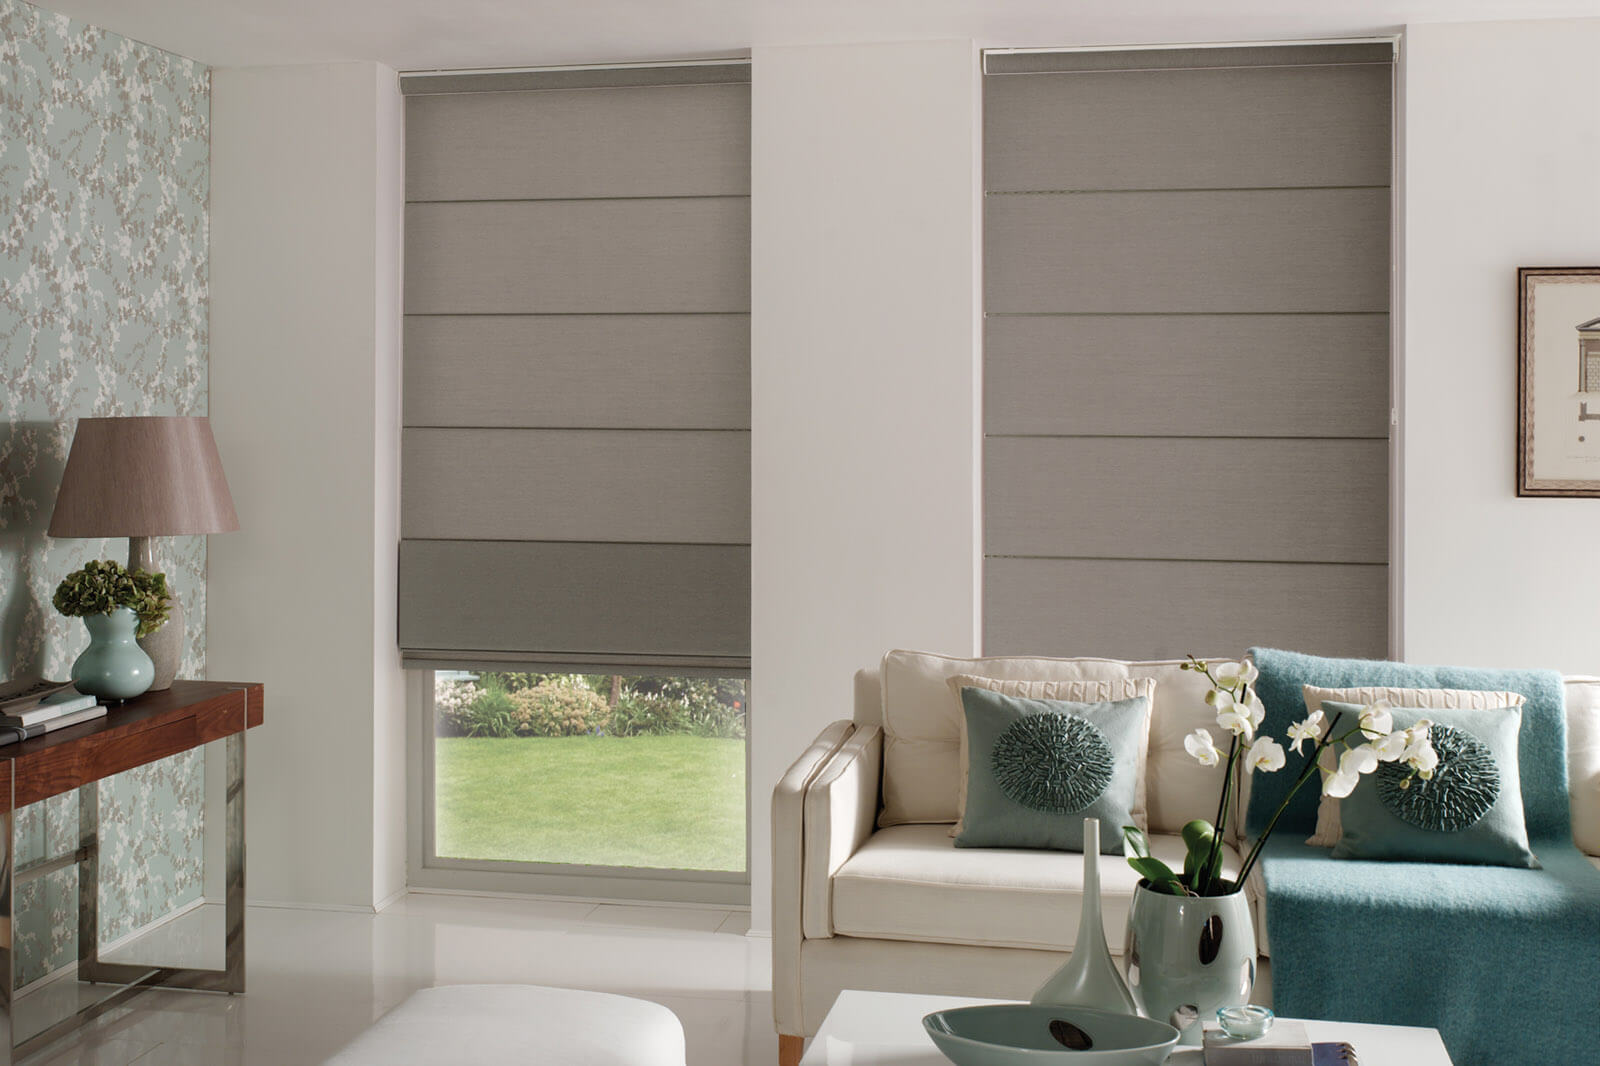 Where To Buy Roman Shades Roman Blinds How To Choose The Perfect Fit Blinds Exact